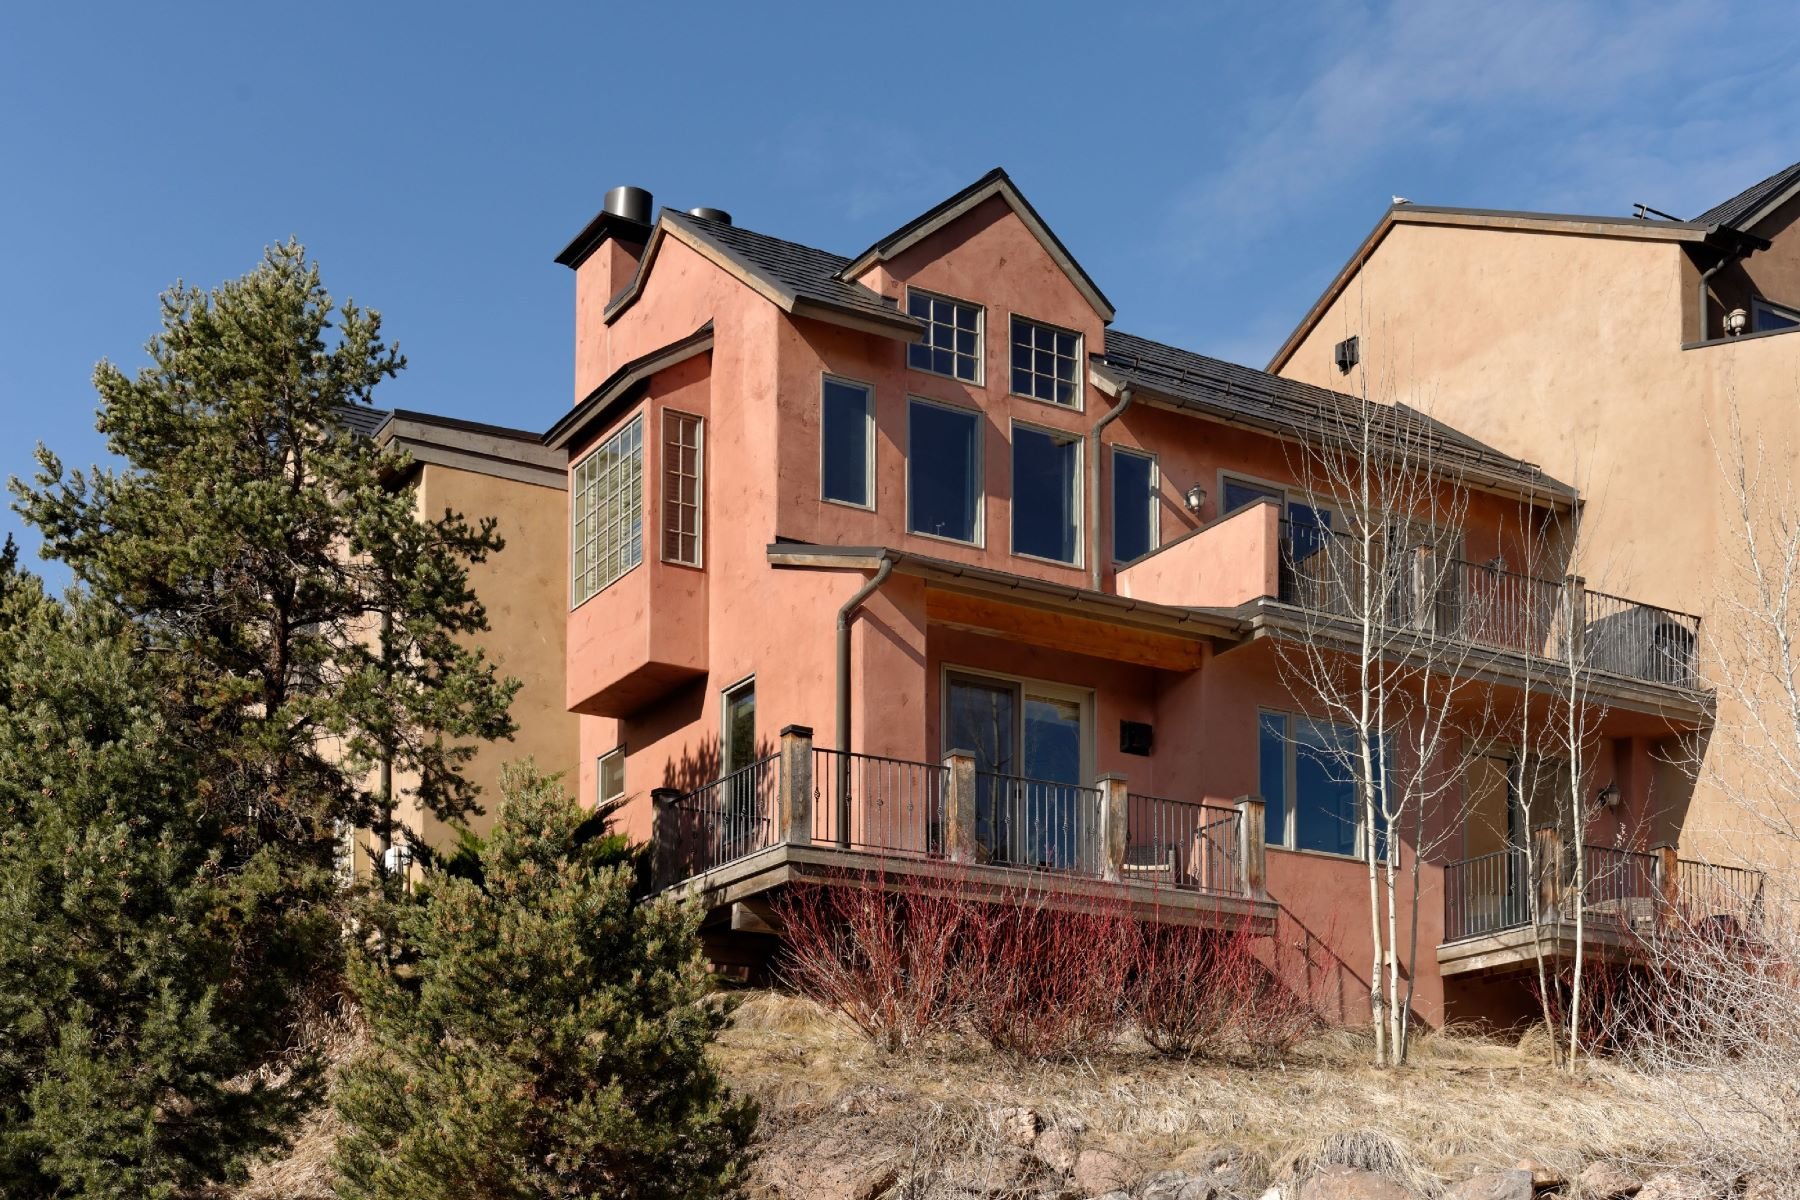 Single Family Home for Sale at The Wilds 206 Wild Spring Lane, Basalt, Colorado, 81621 United States